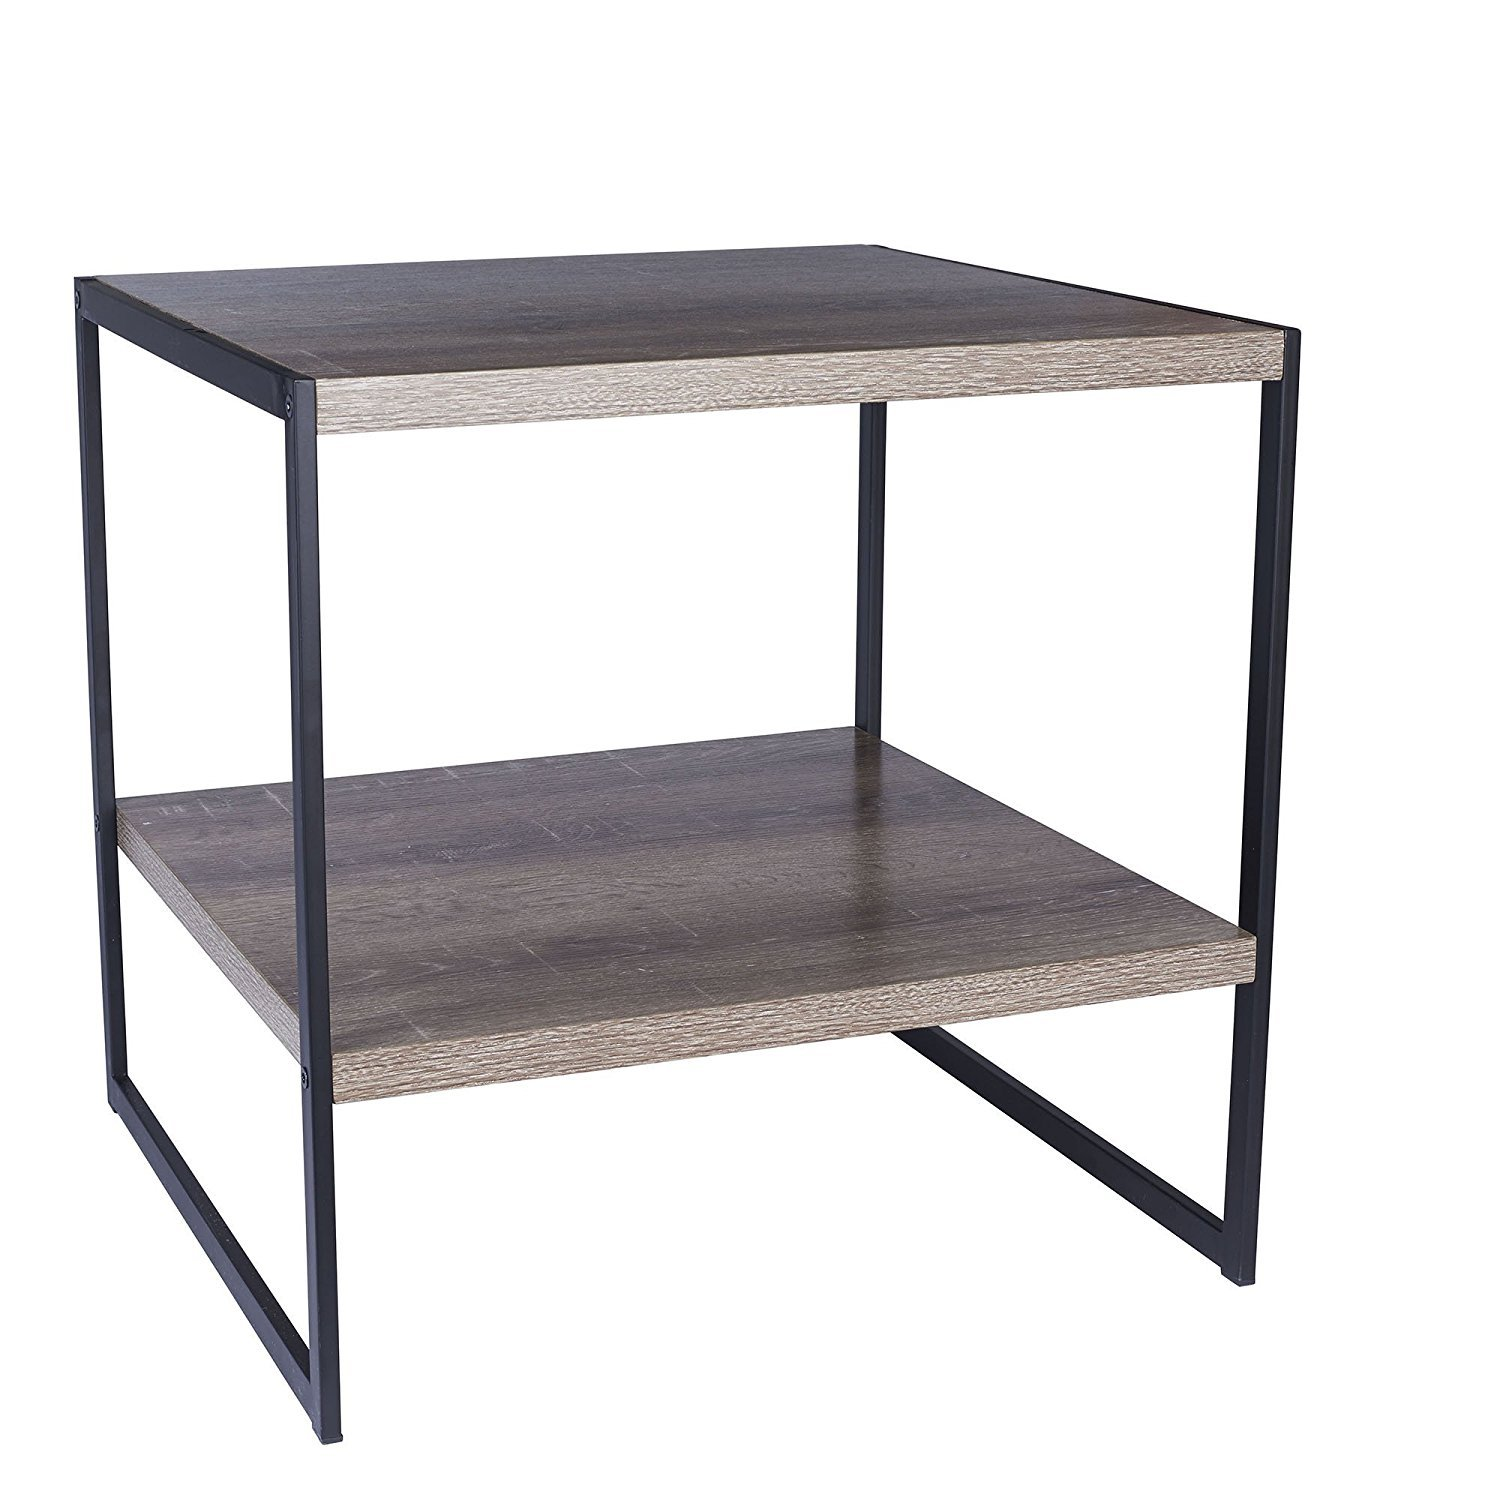 end tables document which is classed within end table end tables and